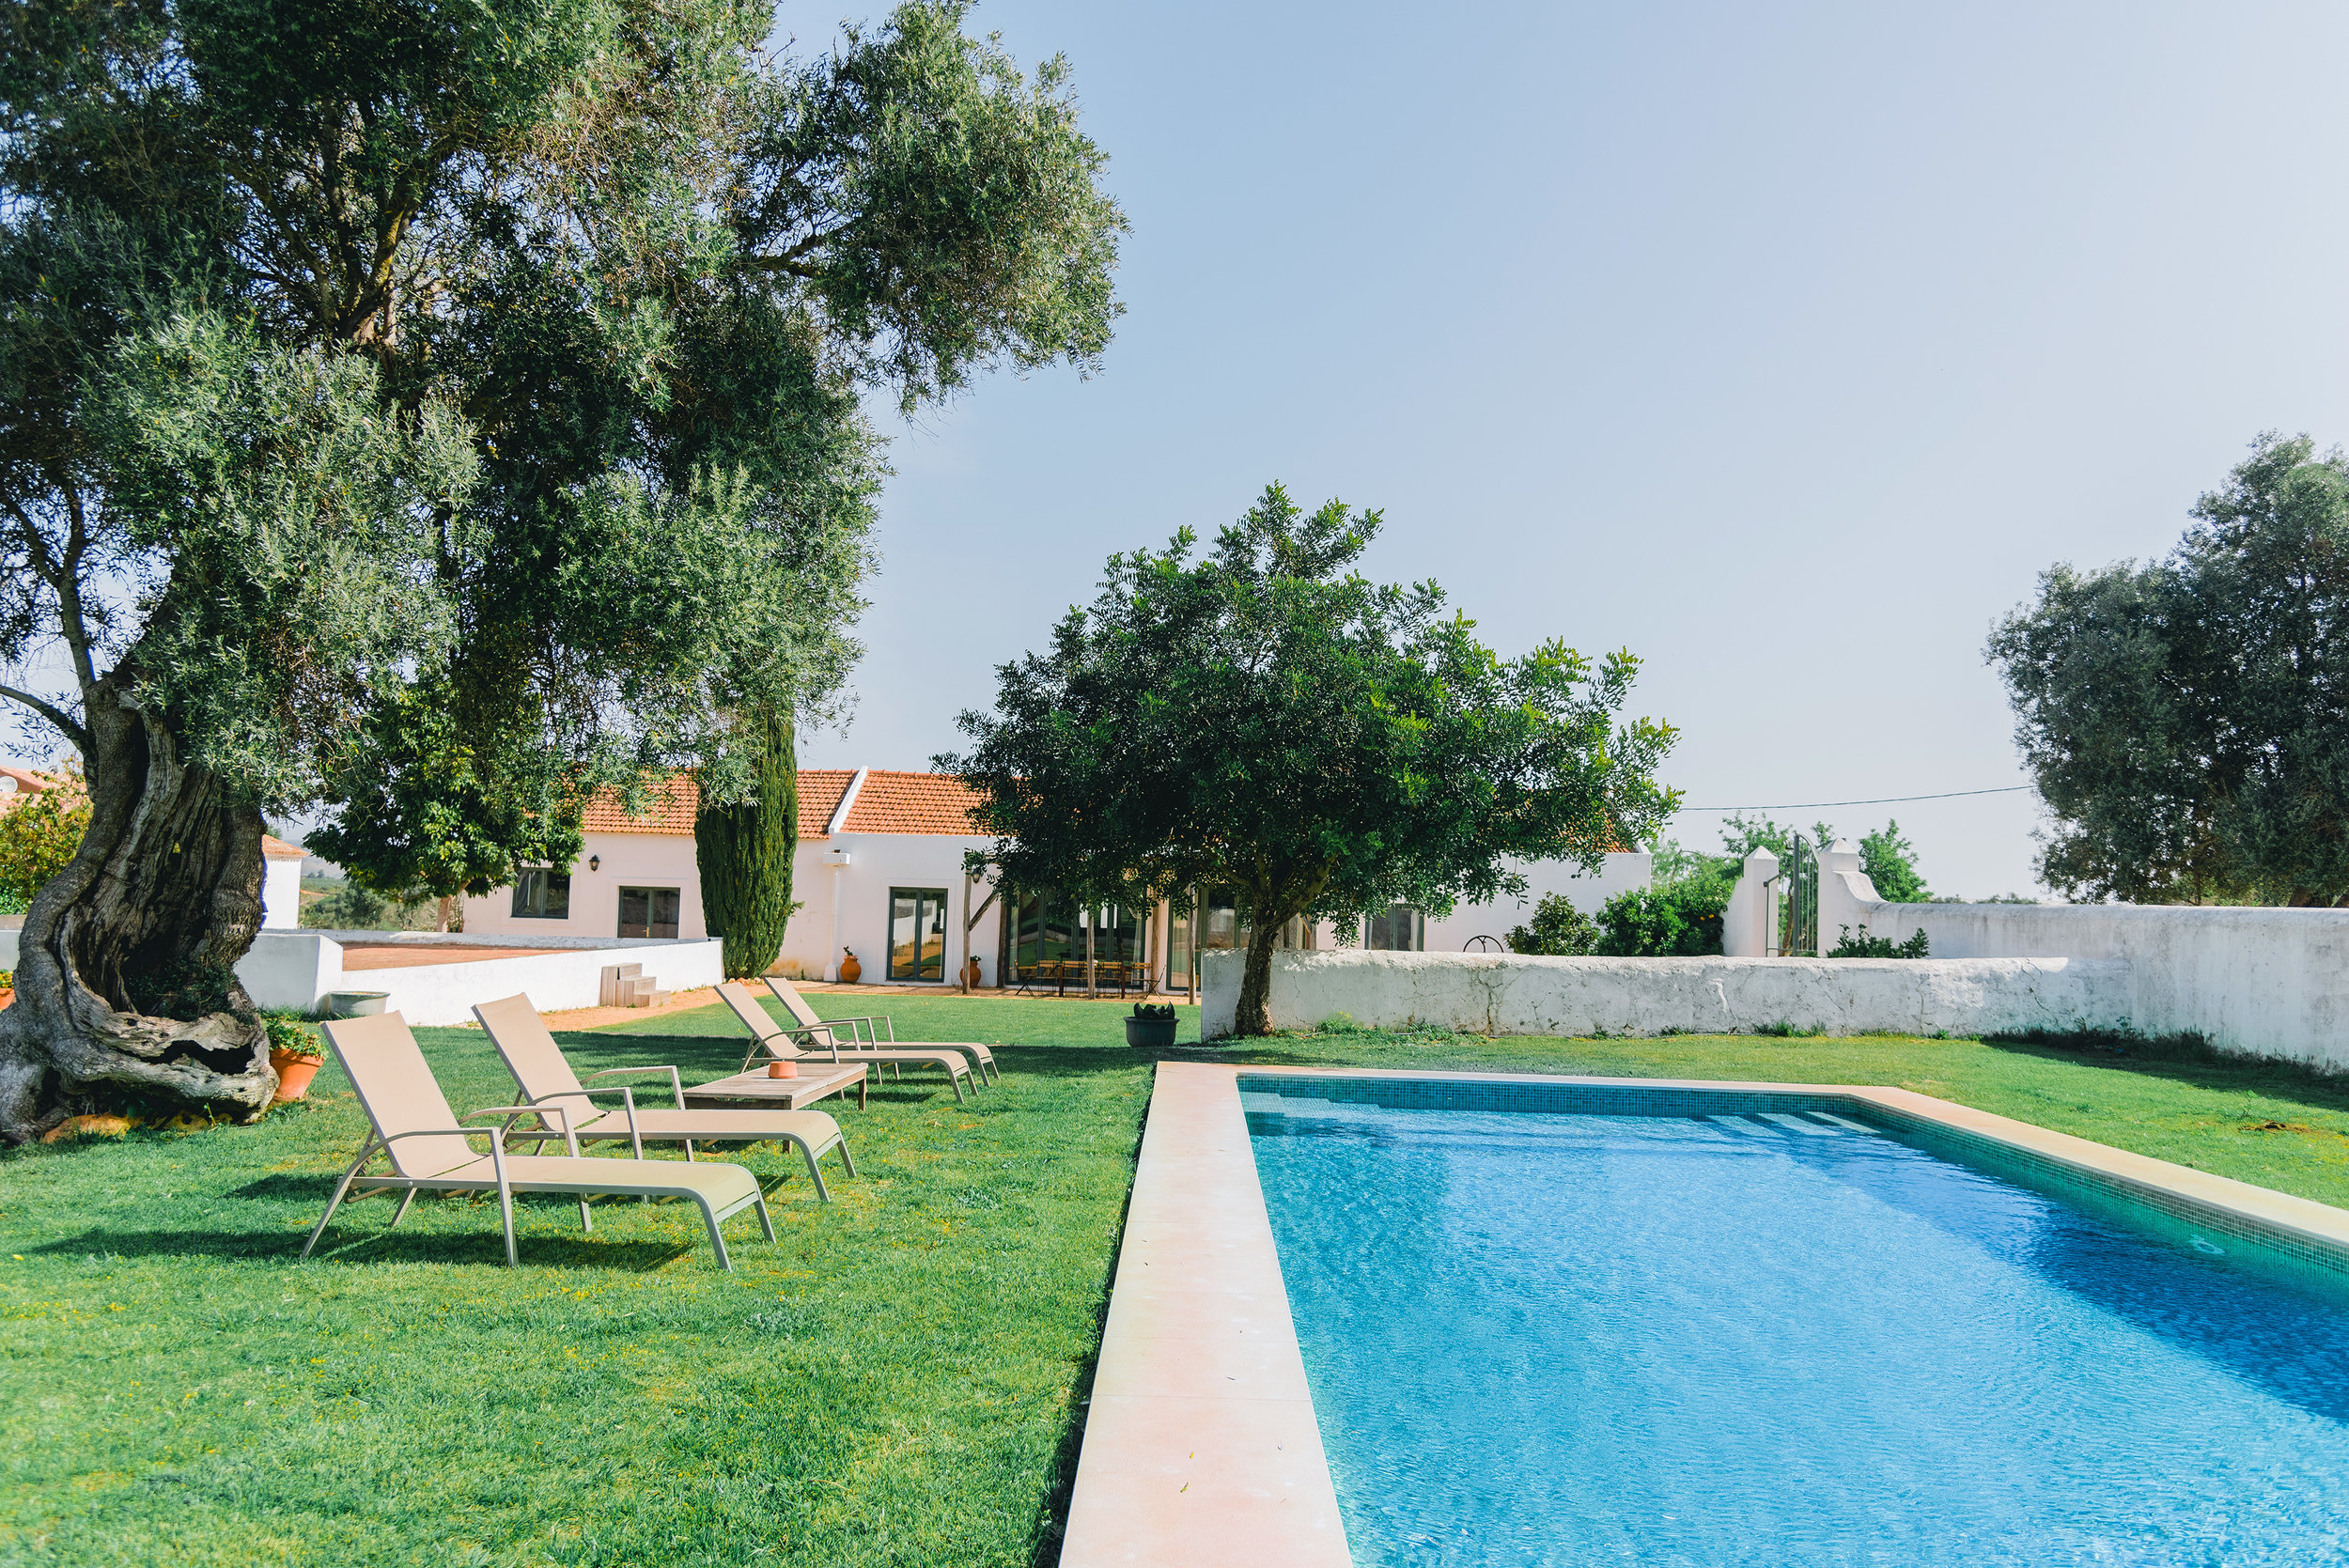 Swimming_pool_1_ALGARVE_Yoga_retreat_venue_Experience-retreats.jpg